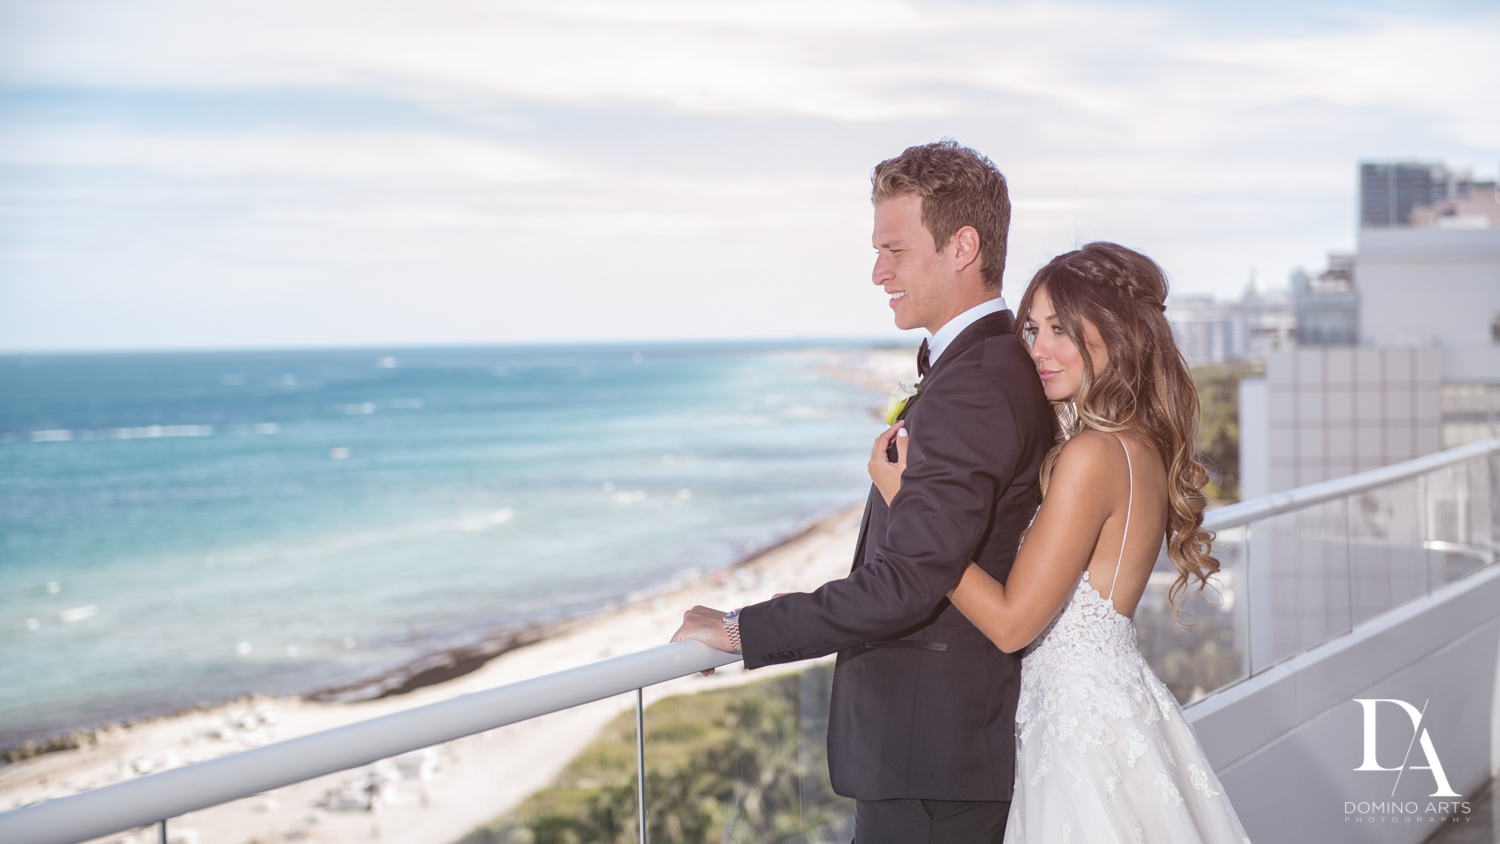 Romantic bride and groom picture at Faena Hotel Miami Beach